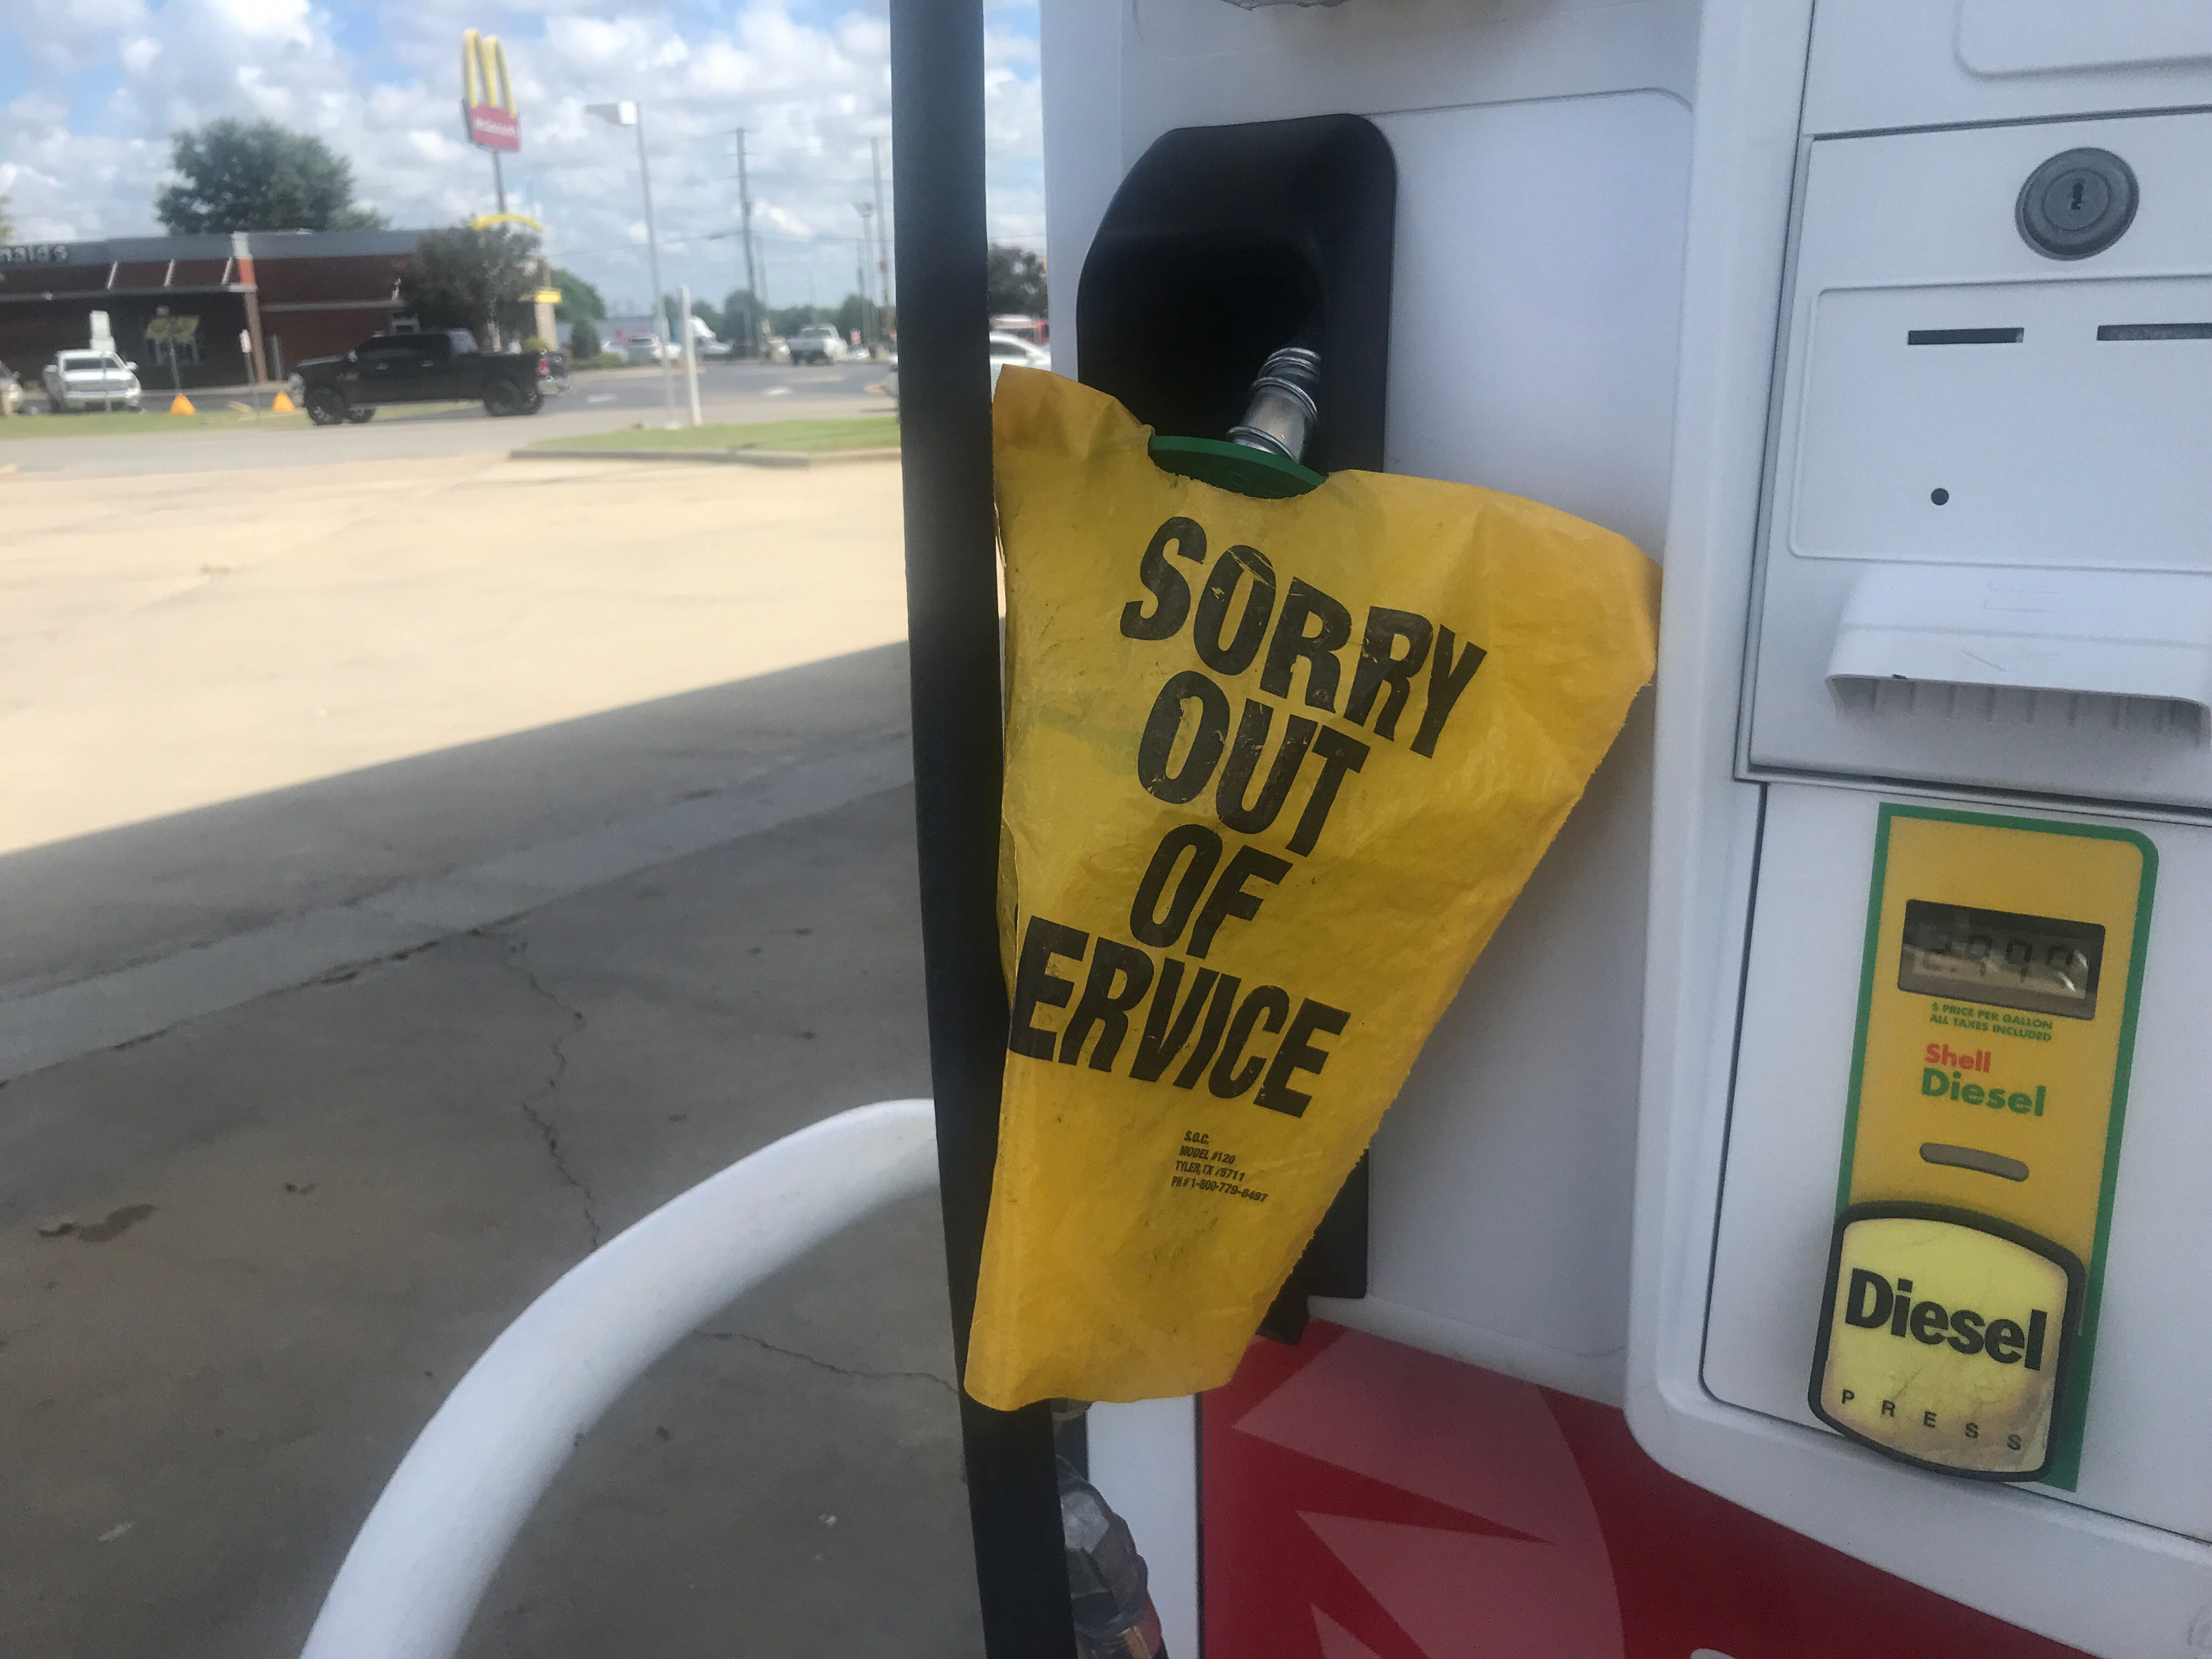 Down to just 300 gallons, the Shell gas station on state highway 42 in Garner, N.C., disabled card swipe on Tuesday, Sept. 11, 2018.